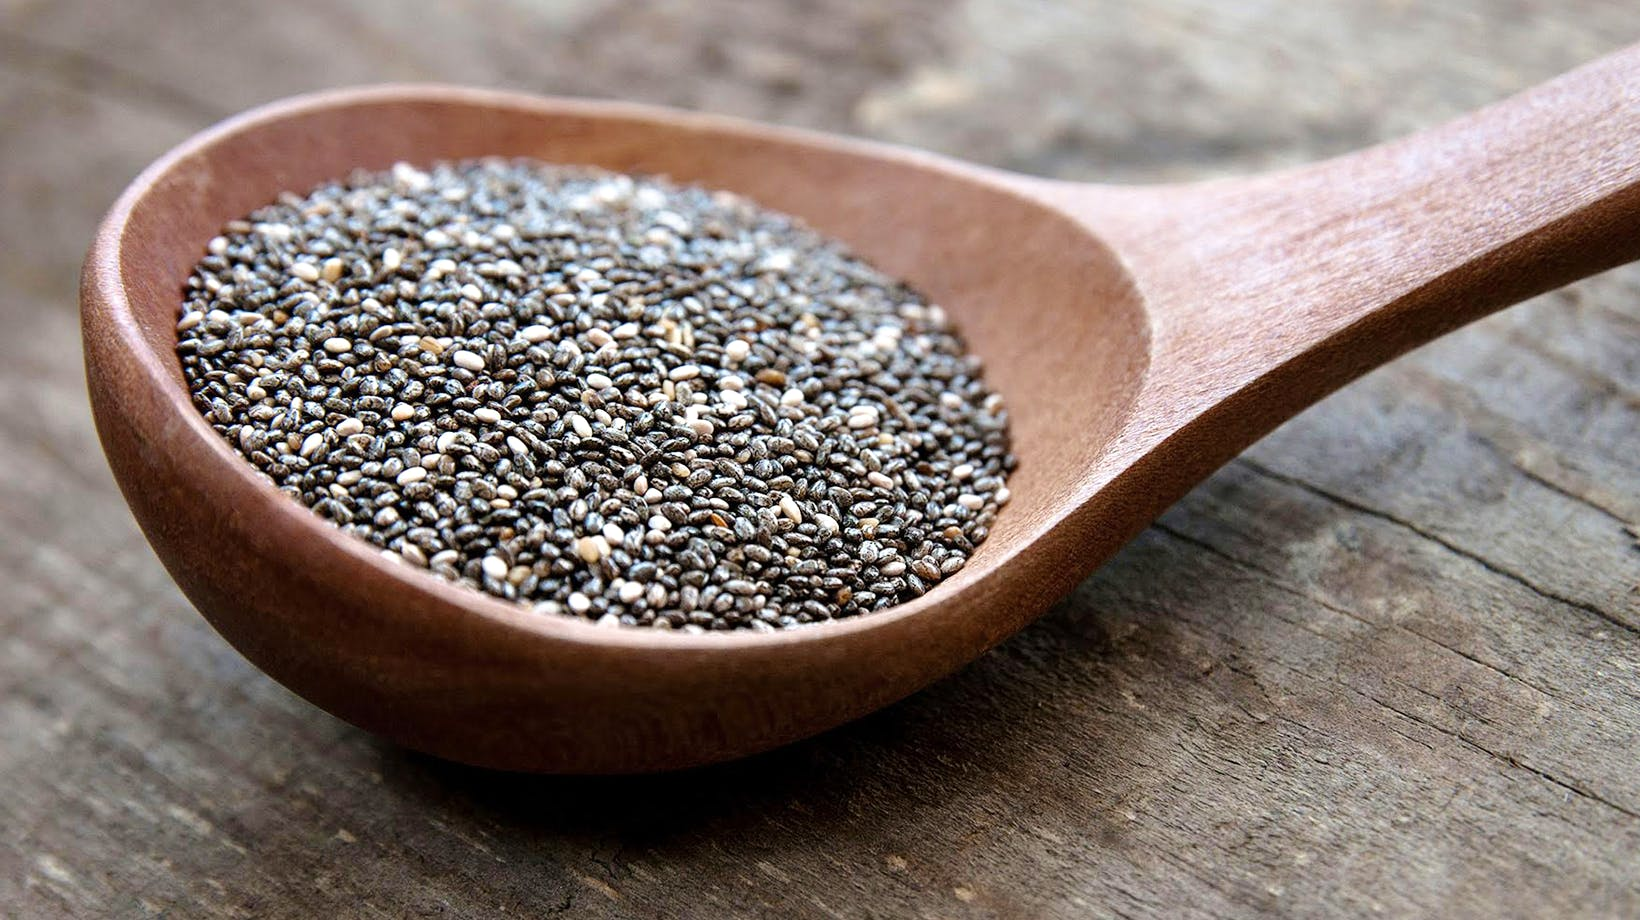 chia seeds are superfoods that help reduce inflammation